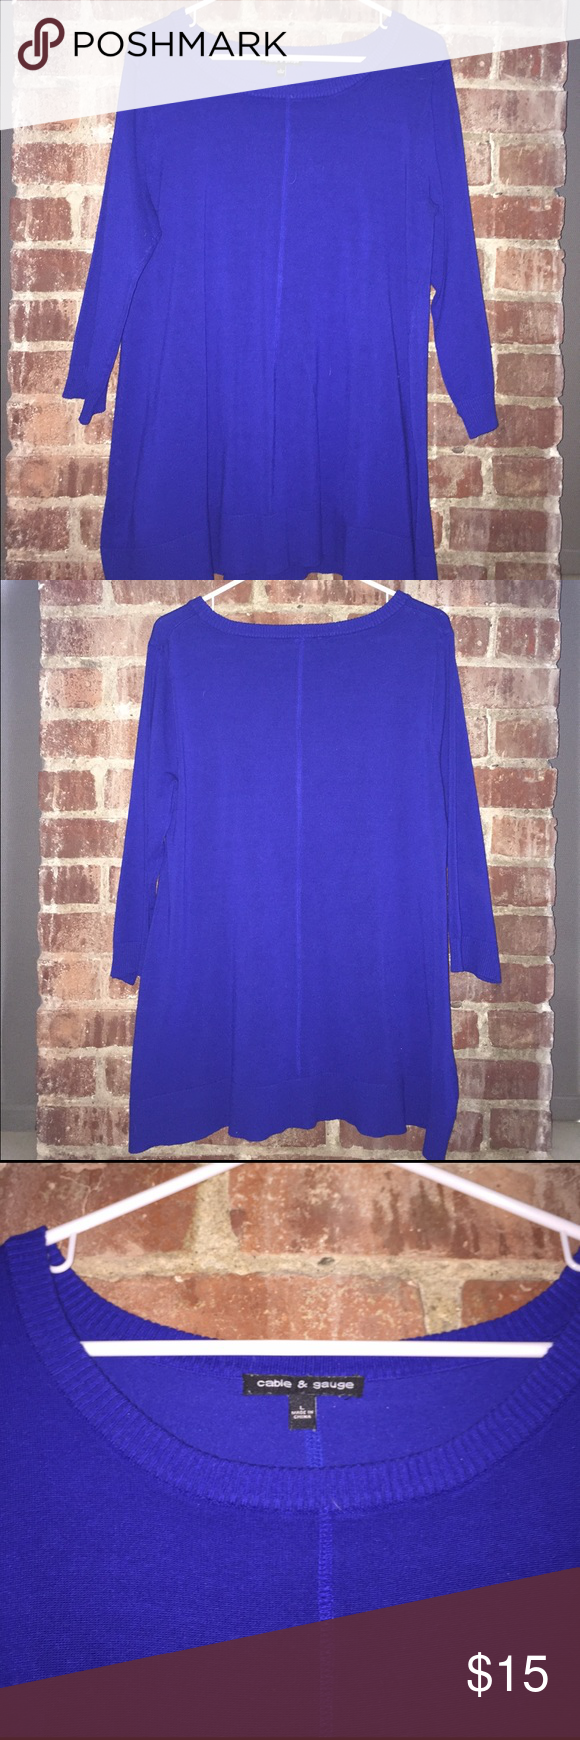 Cable & Gauge tunic sweater - royal blue Long, mid-weight sweater.  Perfectly paired with leggings and tall boots.  Beautiful color. Soft cotton blend fabric. Lightly used, great condition! Cable & Gauge Sweaters